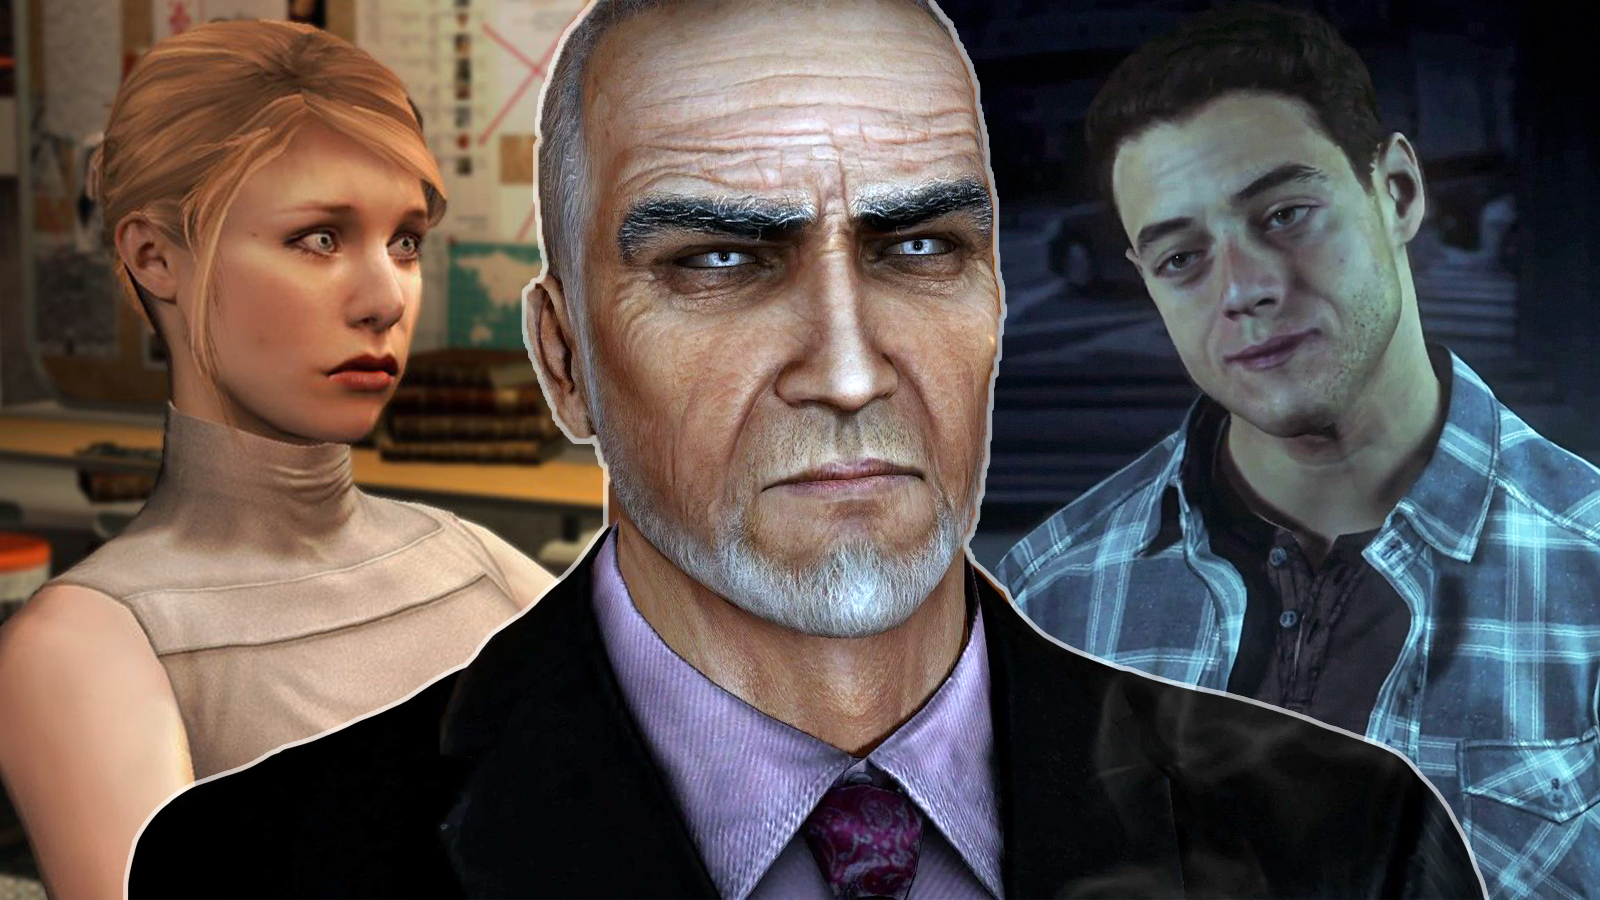 Hollywood celebrities who appeared in video games